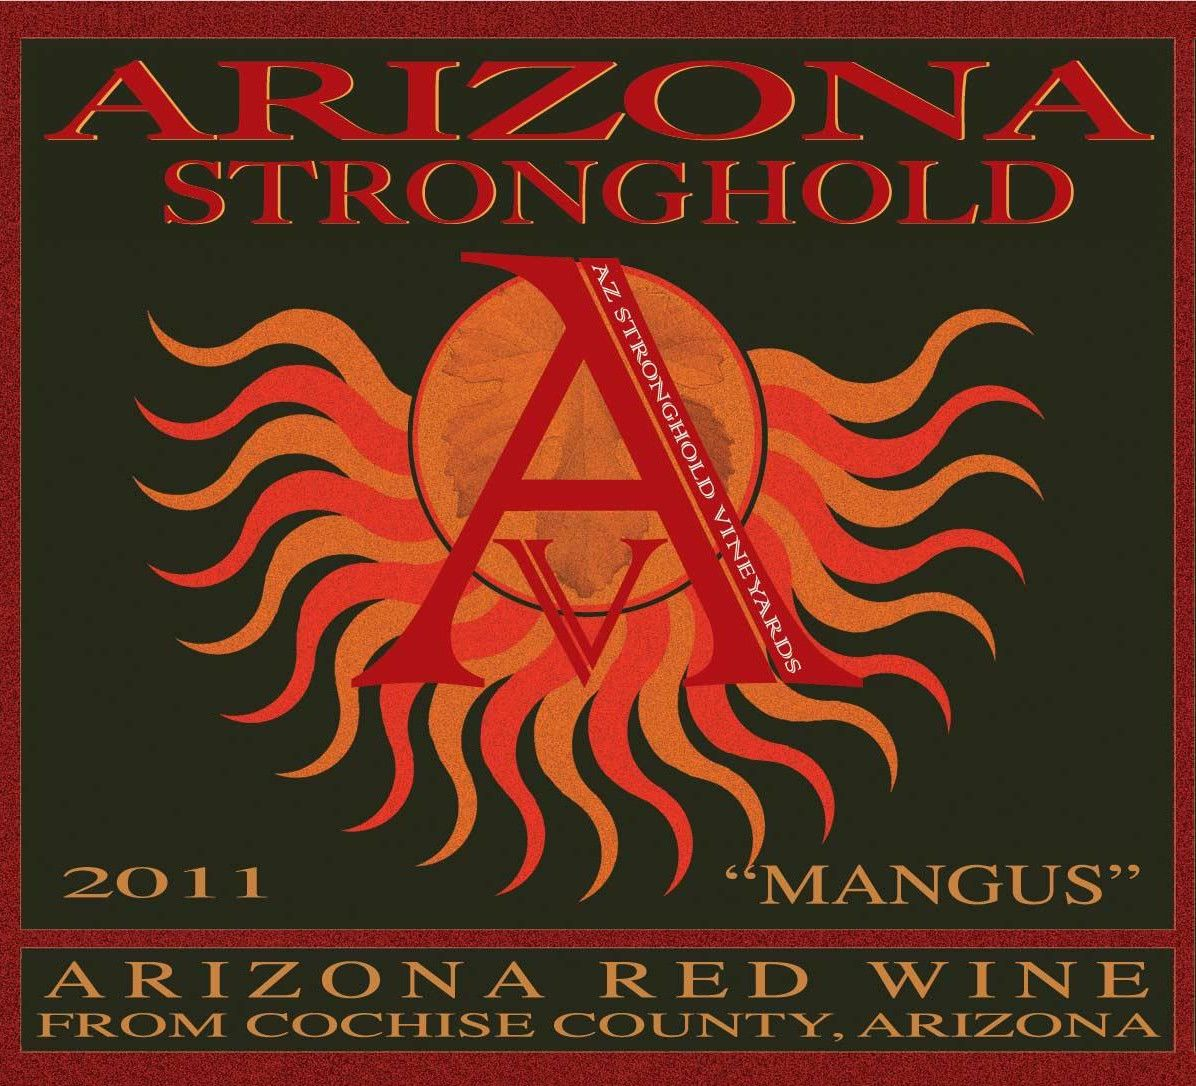 Arizona Stronghold Mangus 2011 Front Label